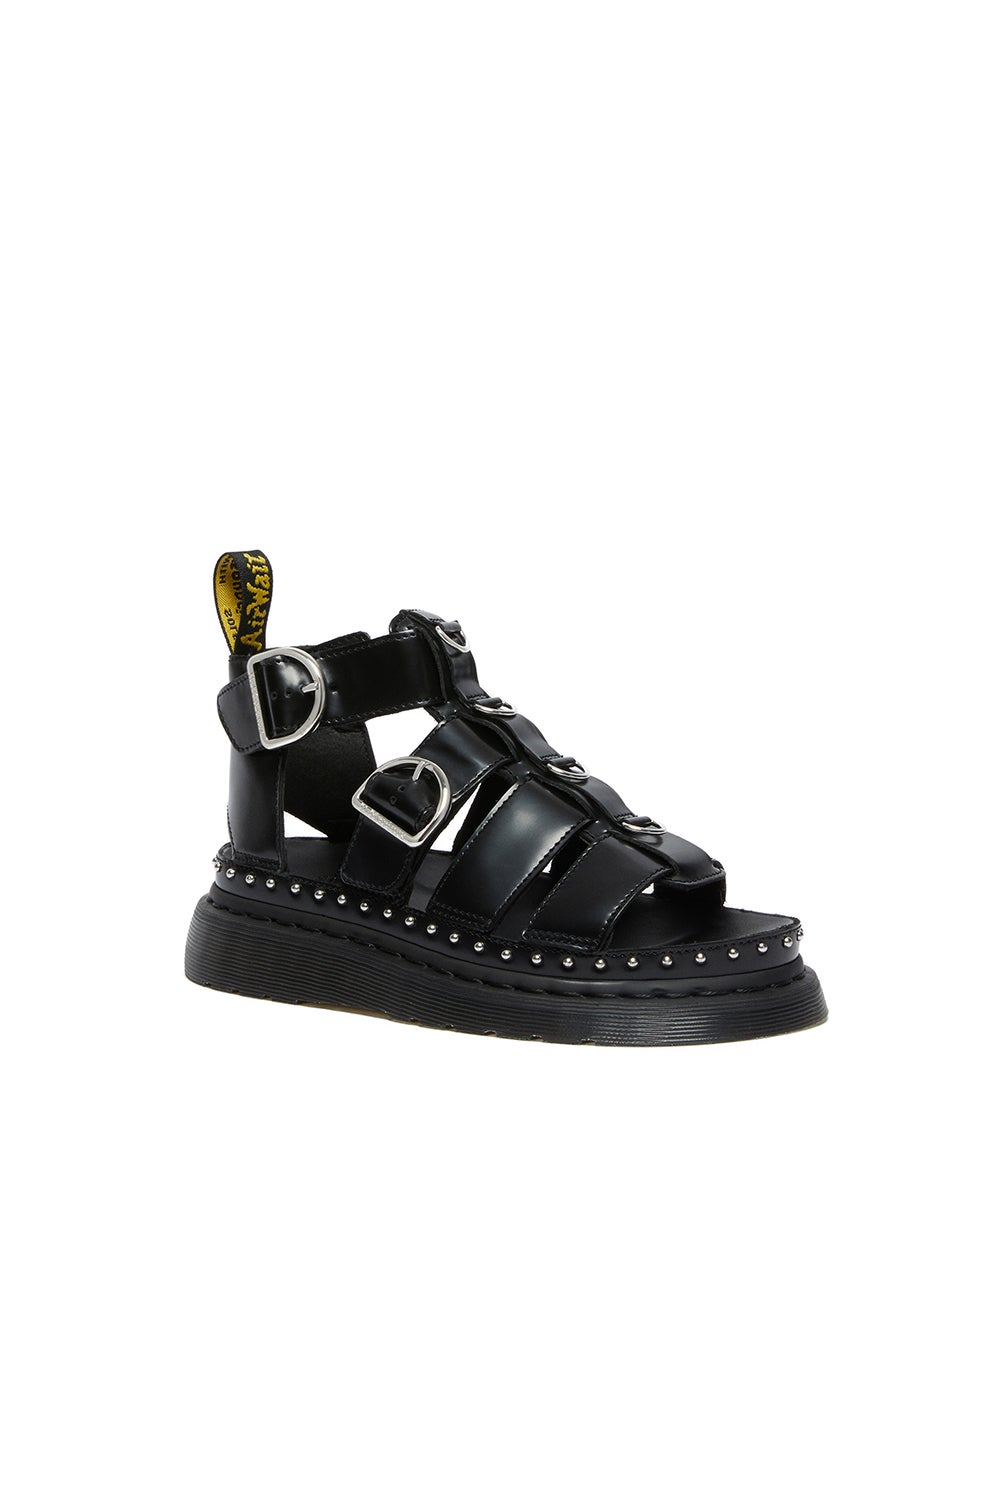 Dr. Martens Mackaye Hardware Sandals Black